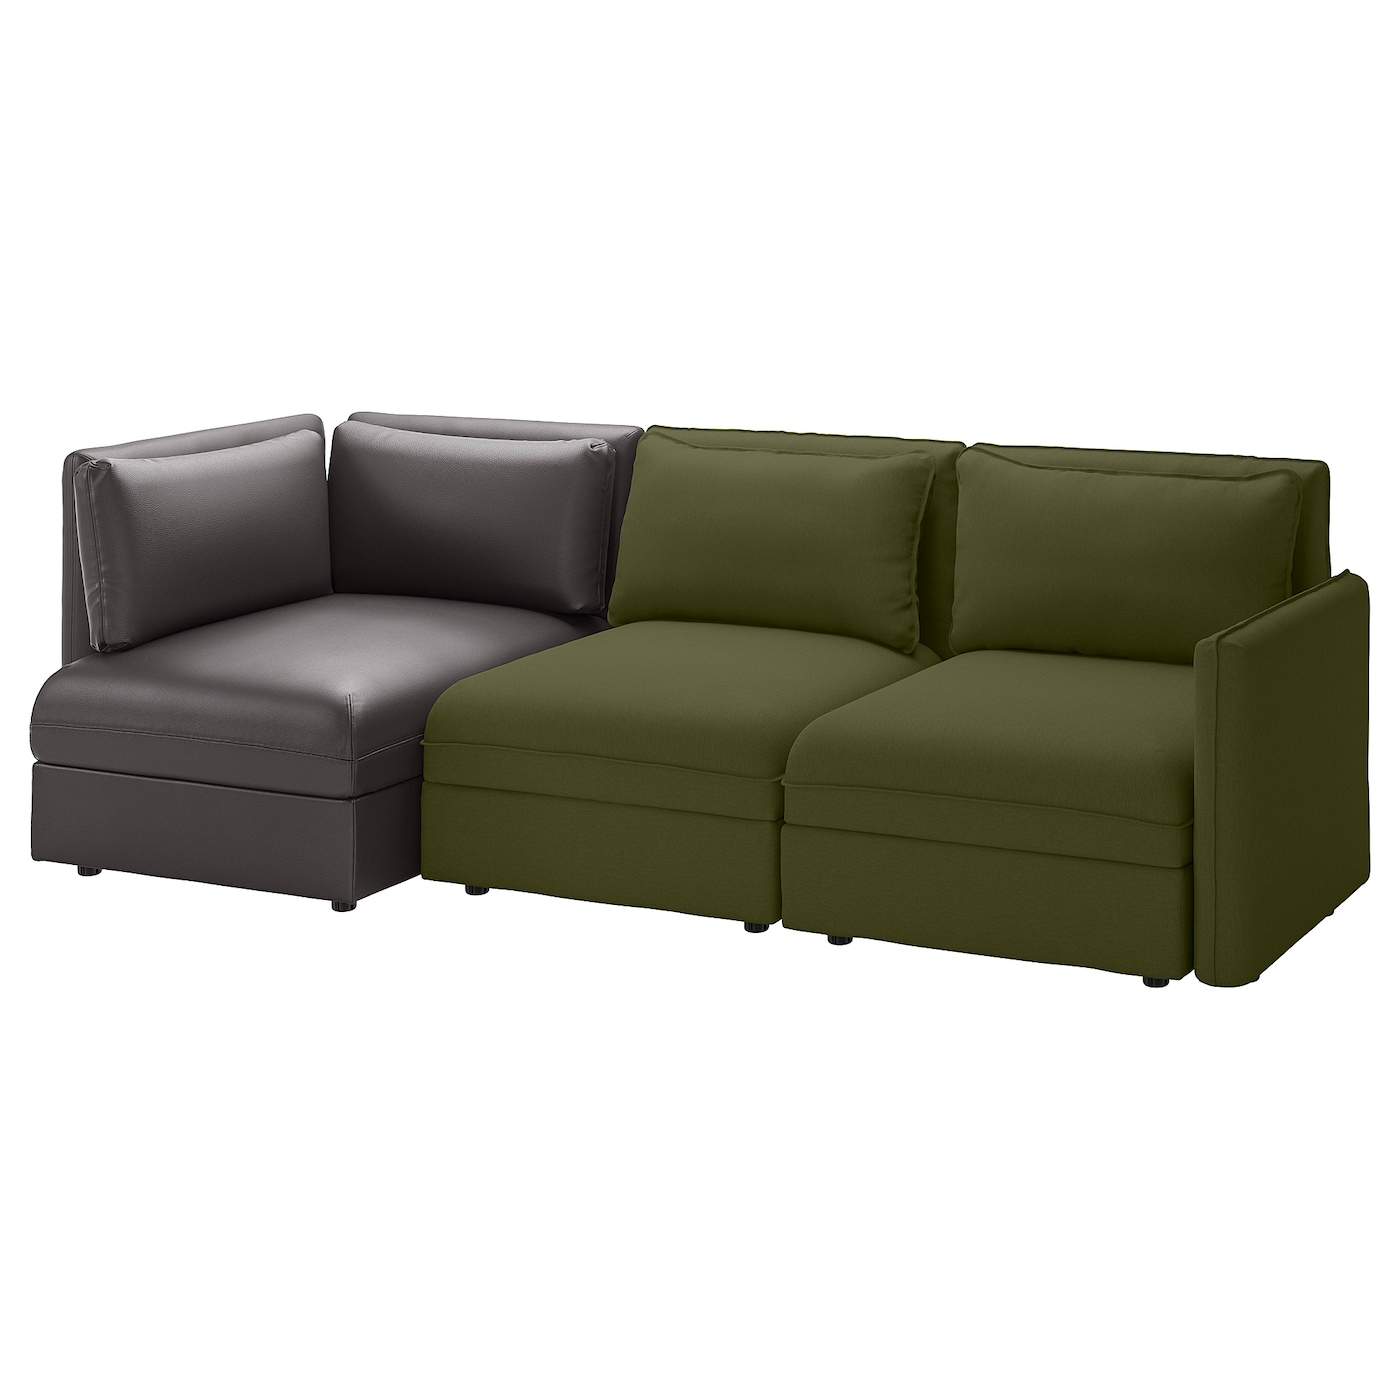 Vallentuna 3 Seat Modular Sofa With